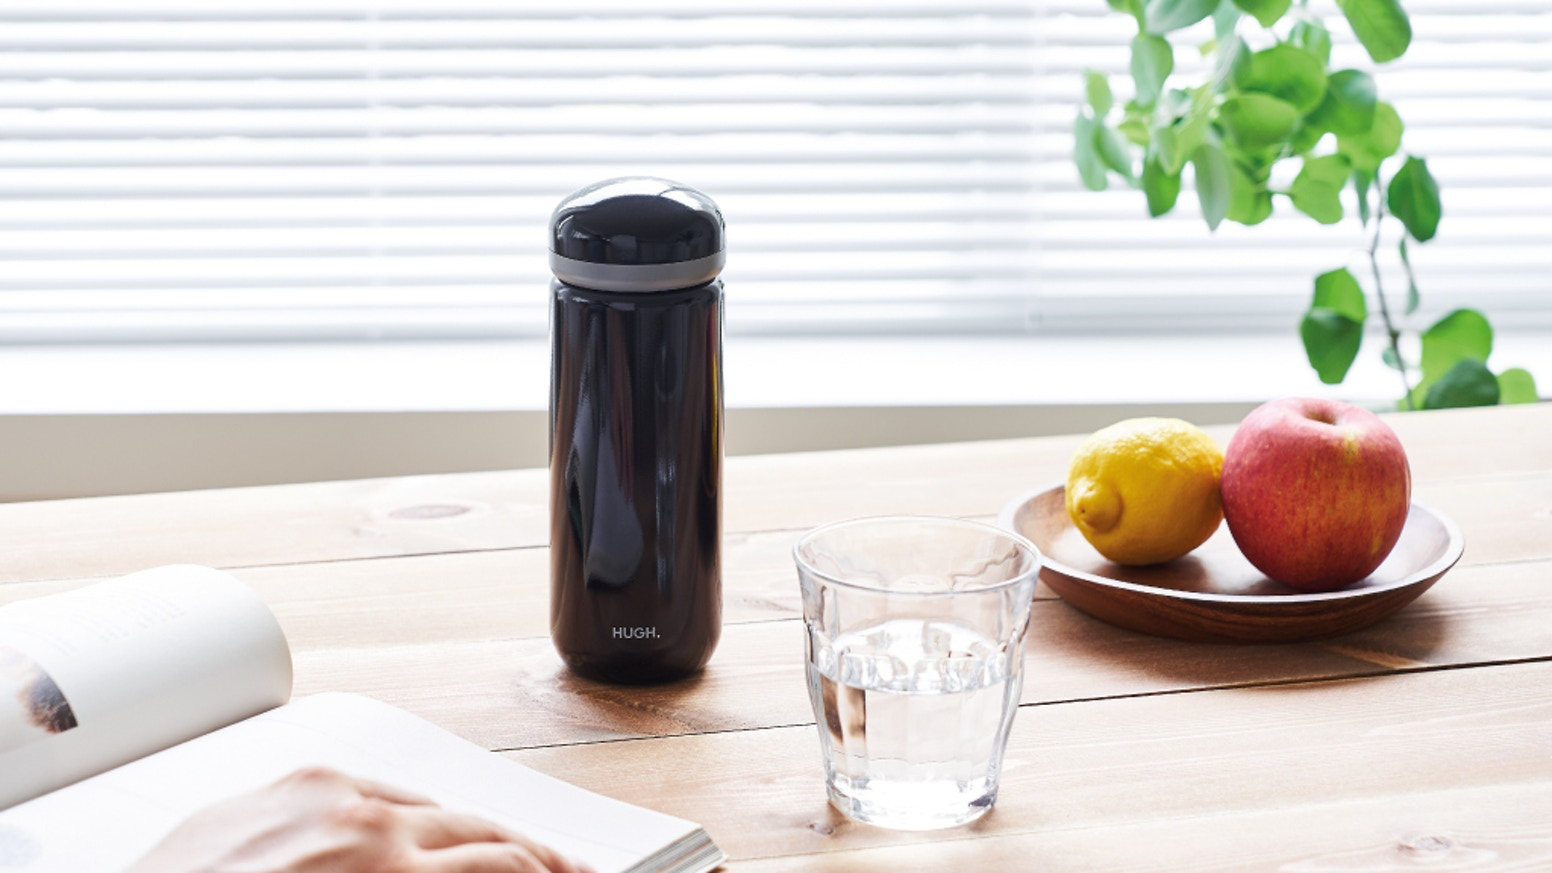 Pebble bottle incorporates both practicality and elegant design into one portable Coffee brew coffee, tea, and infused water maker.